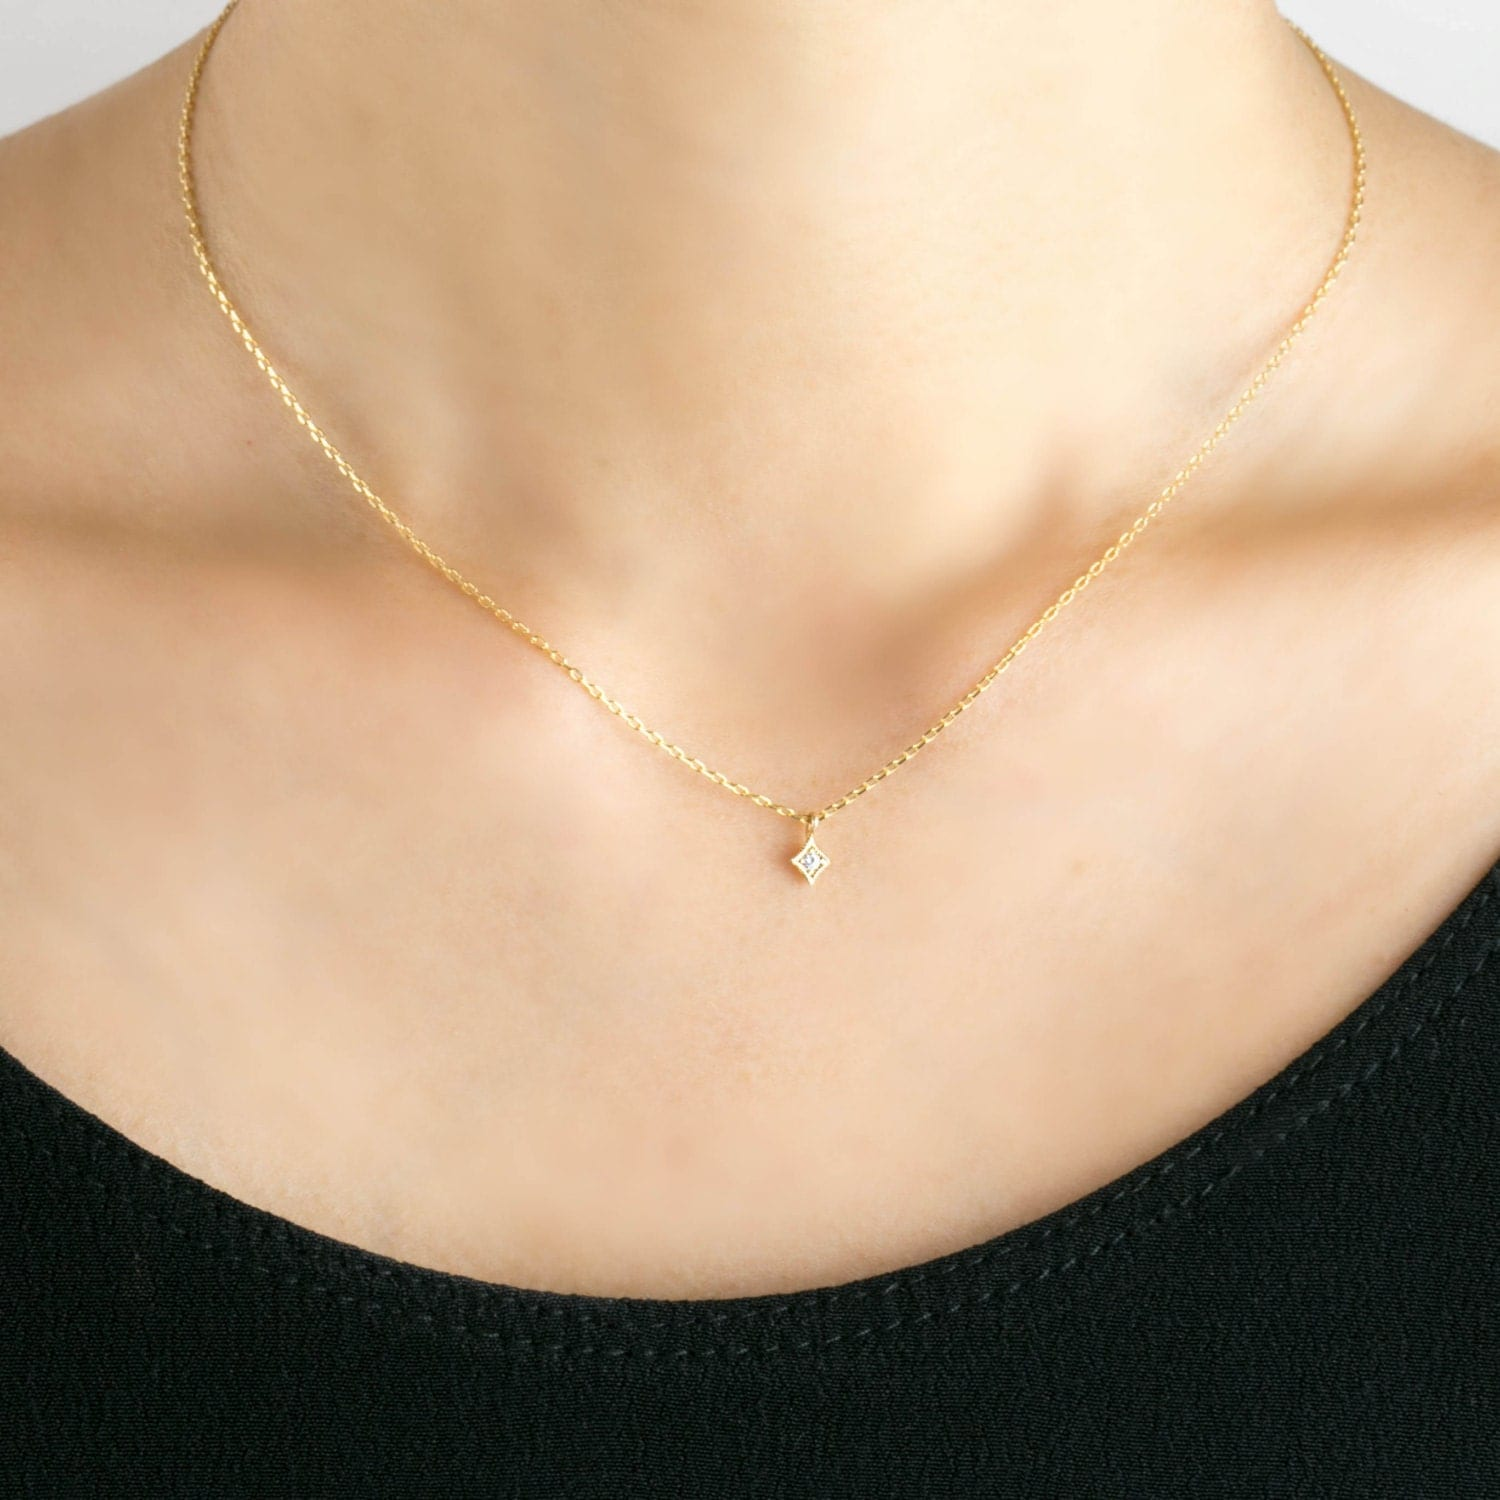 tiny dainty diamond chain necklace star necklace. Black Bedroom Furniture Sets. Home Design Ideas